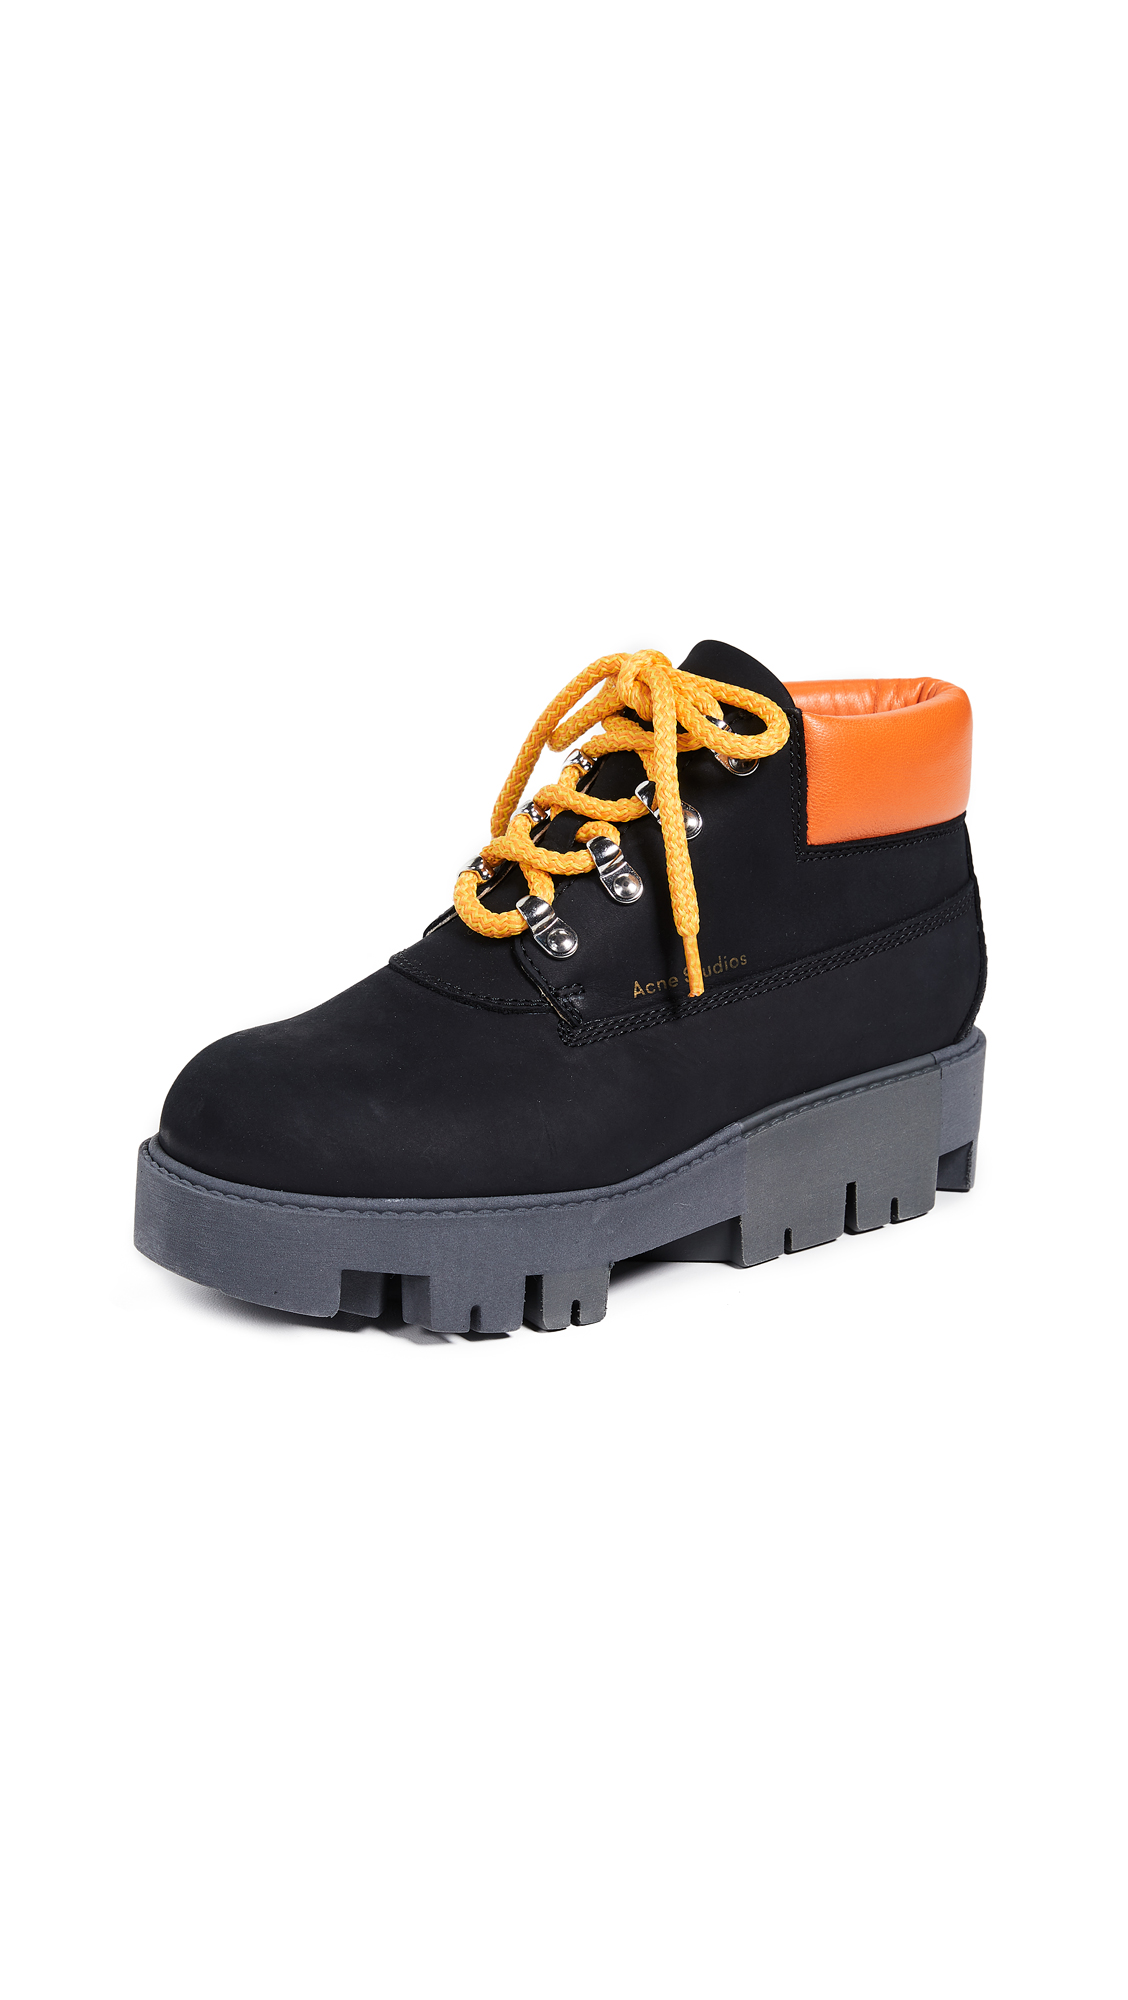 Acne Studios Tinne Contrast Hiker Boots - Black/Orange